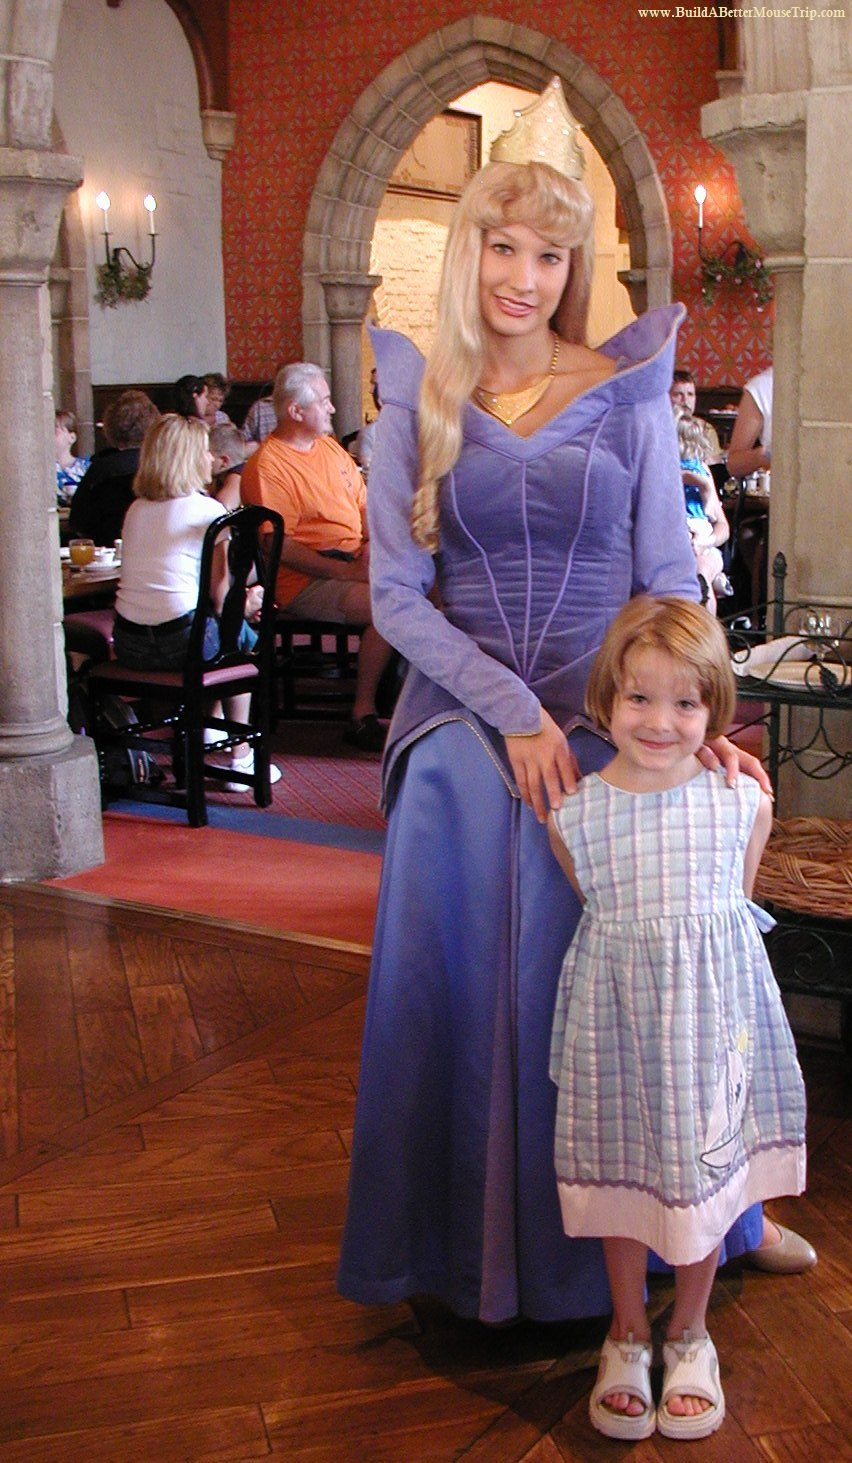 Aurora (Sleeping Beauty) at the Disney Princess Storybook Breakfast at Akershus Royal Banquet Hall in Epcot